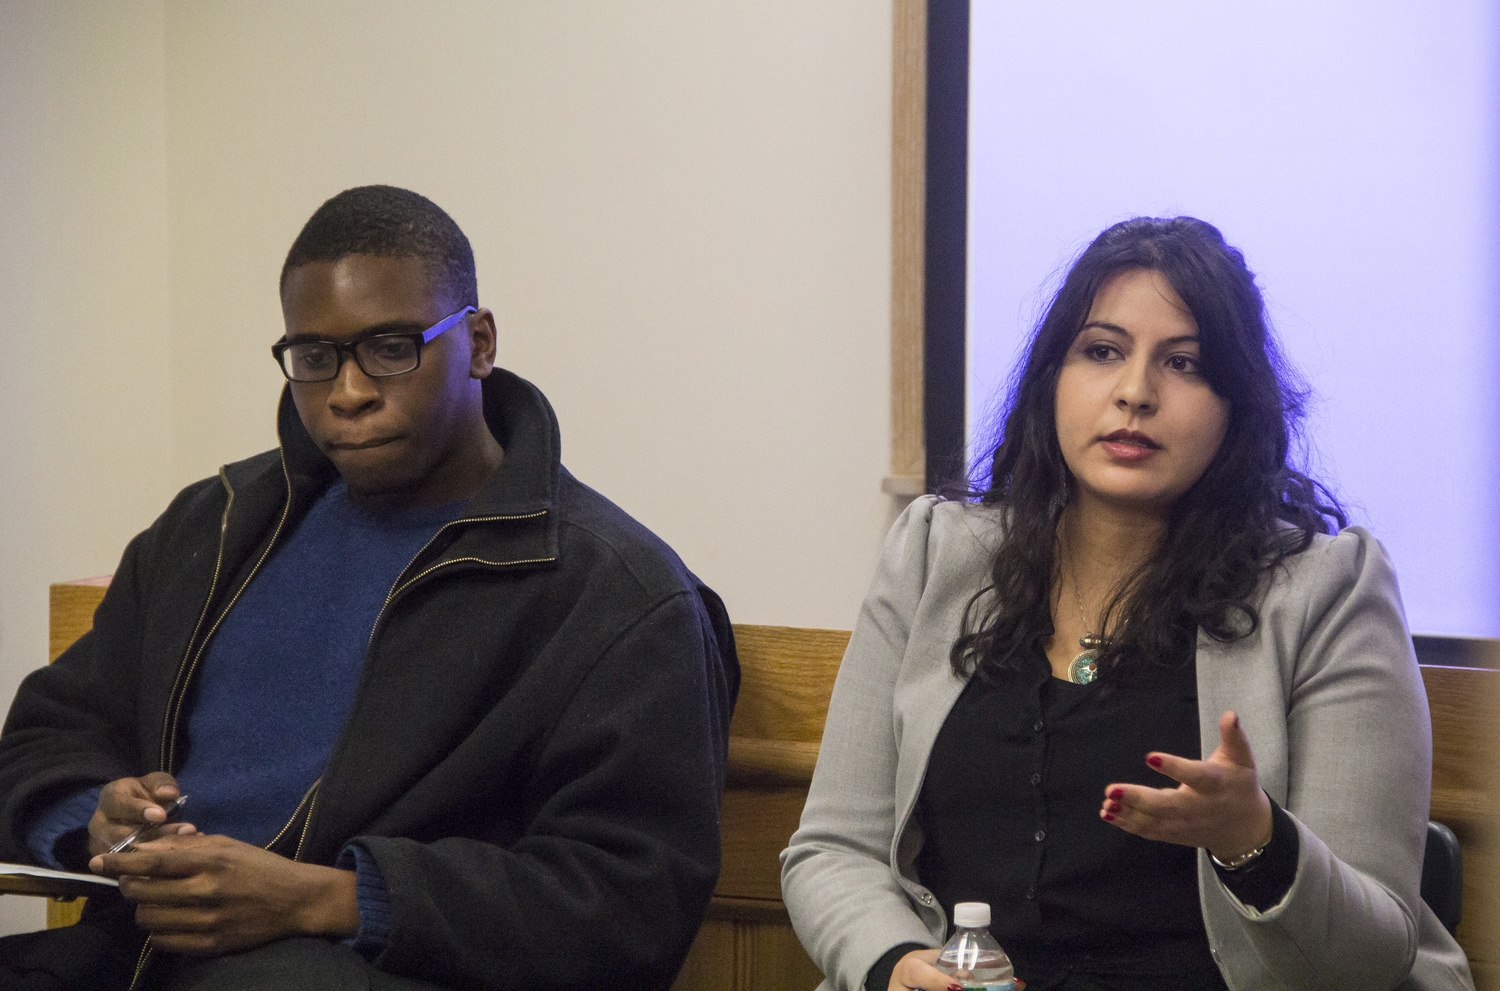 Temitope A. Agabalogun '15, left, and Nashwa Gewaily, a legal fellow at the Massachusetts ACLU, discuss the aftermath and consequences of the non-indictments of the police officers responsible for the deaths of Michael Brown and Eric Garner last year.